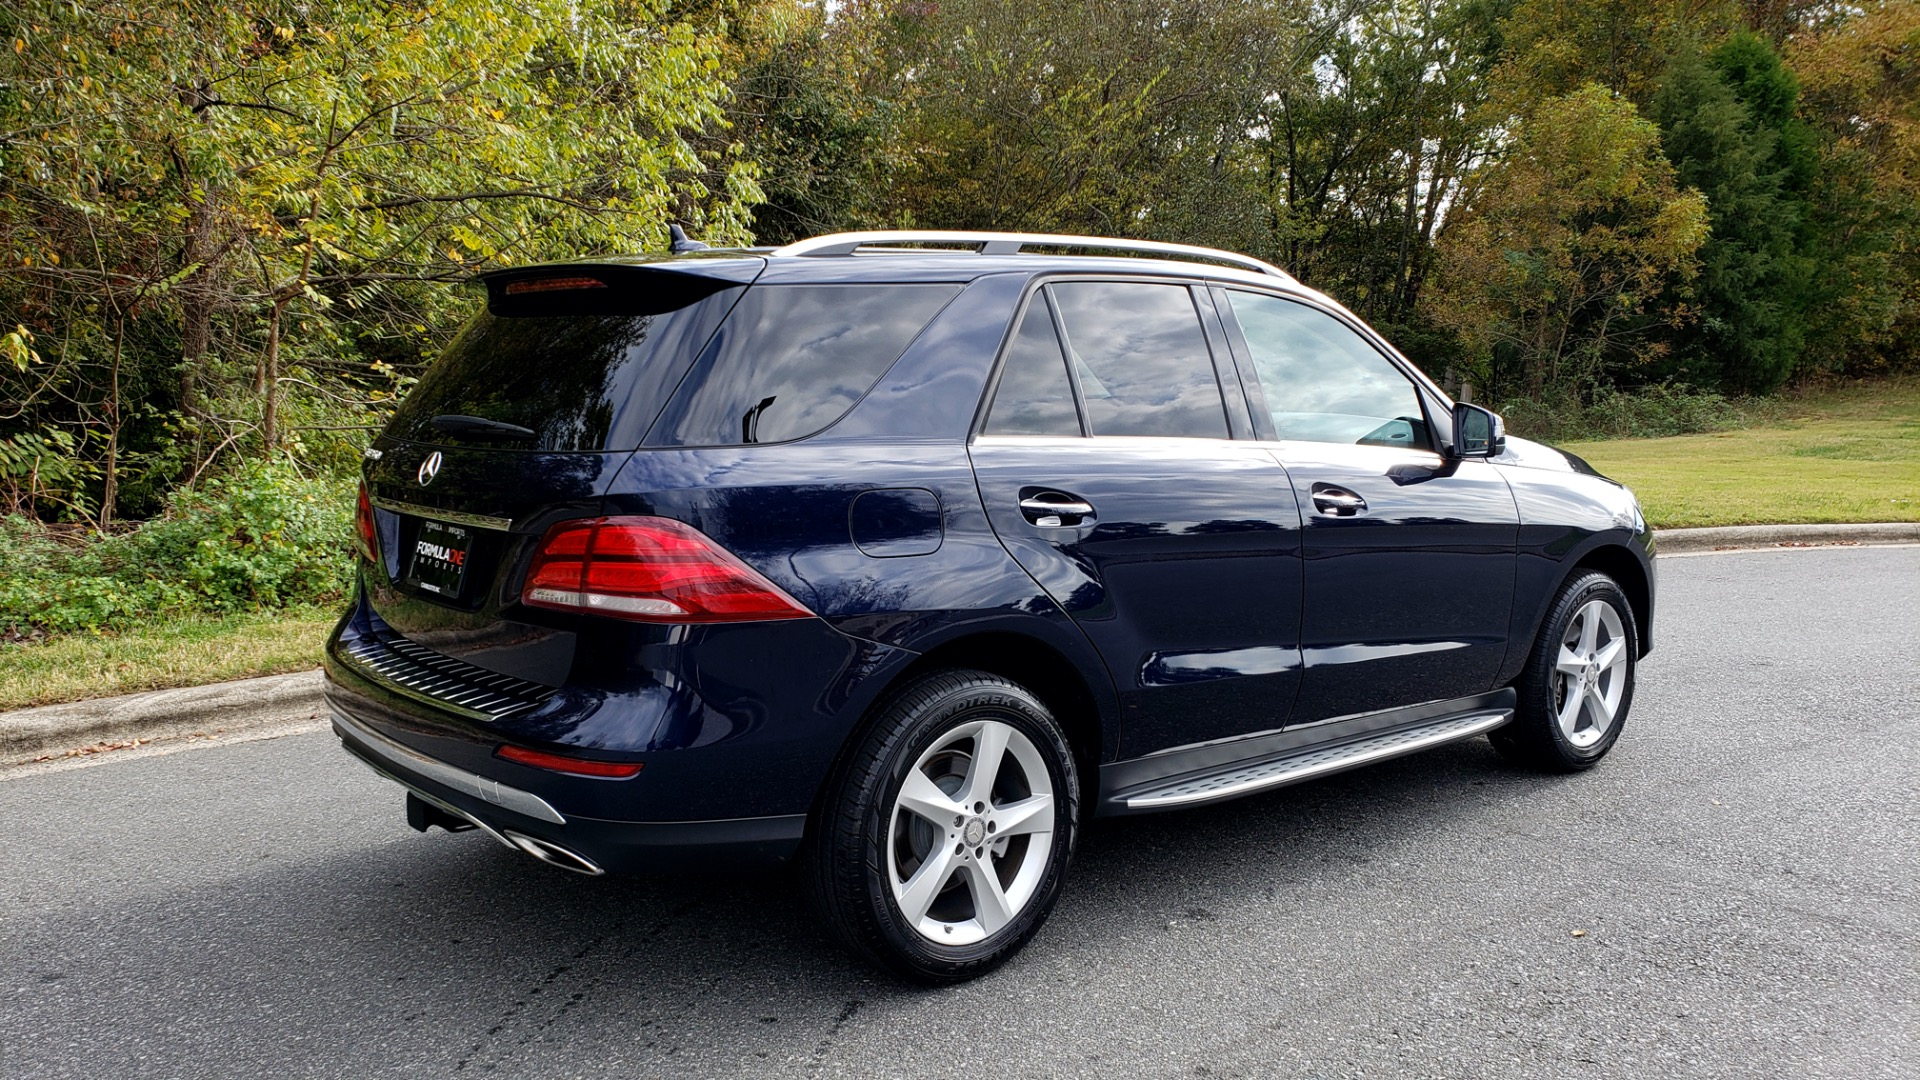 Used 2016 Mercedes-Benz GLE 350 PREMIUM / NAV / SUNROOF / BACK-UP CAMERA / LANE TRACKING for sale Sold at Formula Imports in Charlotte NC 28227 8